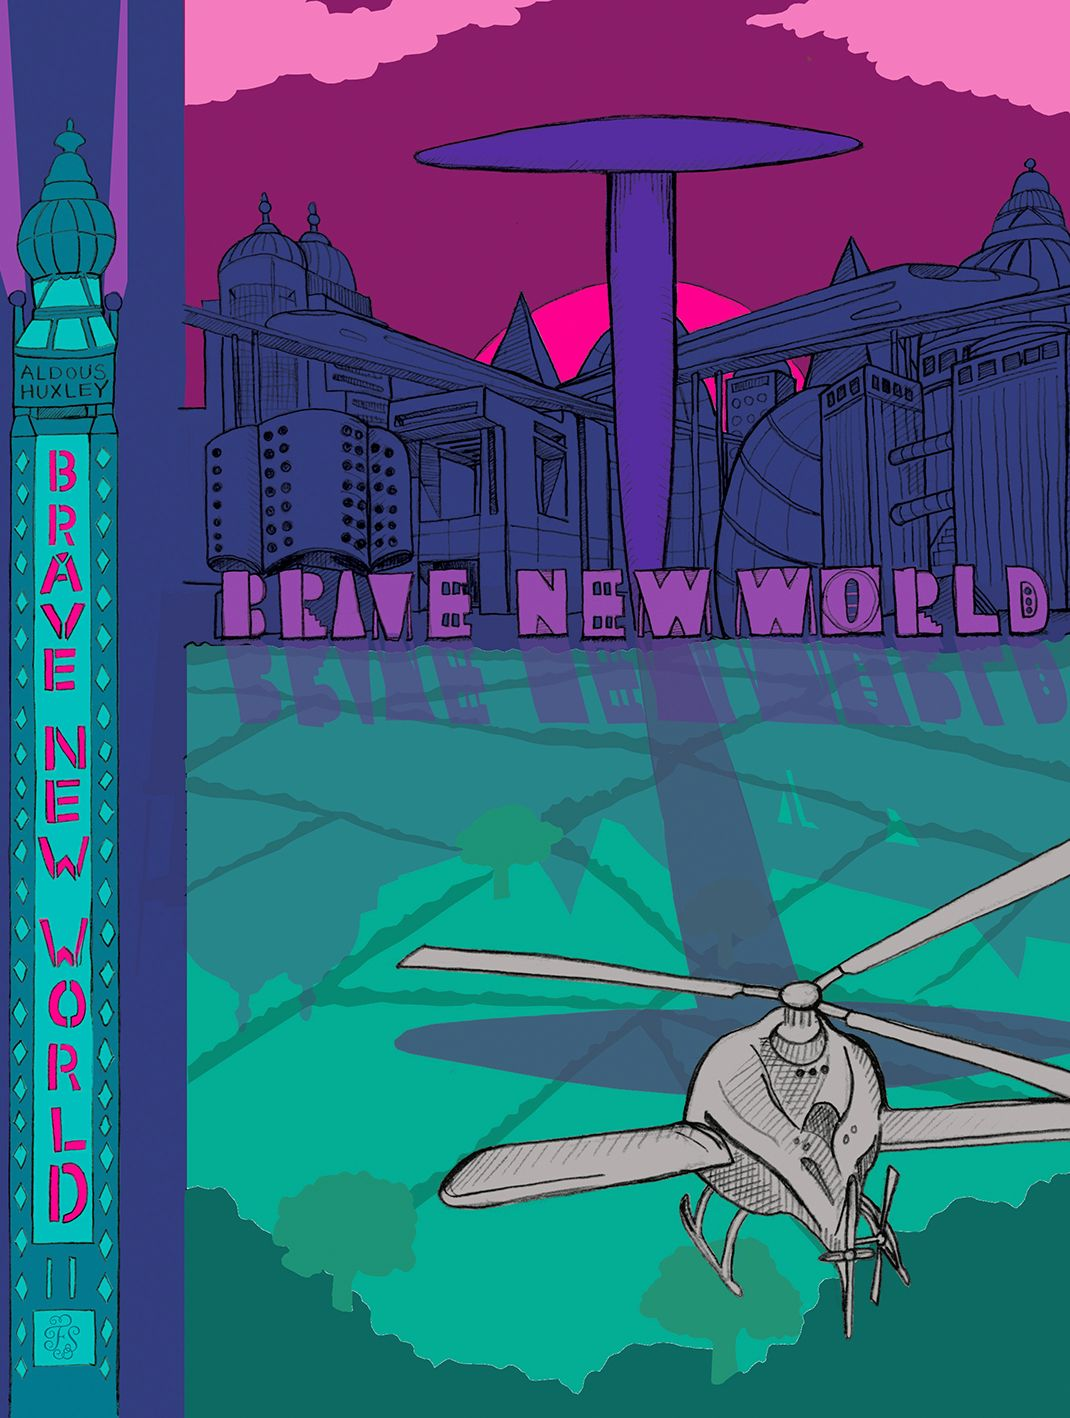 video sparknotes aldous huxley s brave new world summary brave new world is a novel written in 1931 by aldous huxley and published in 1932